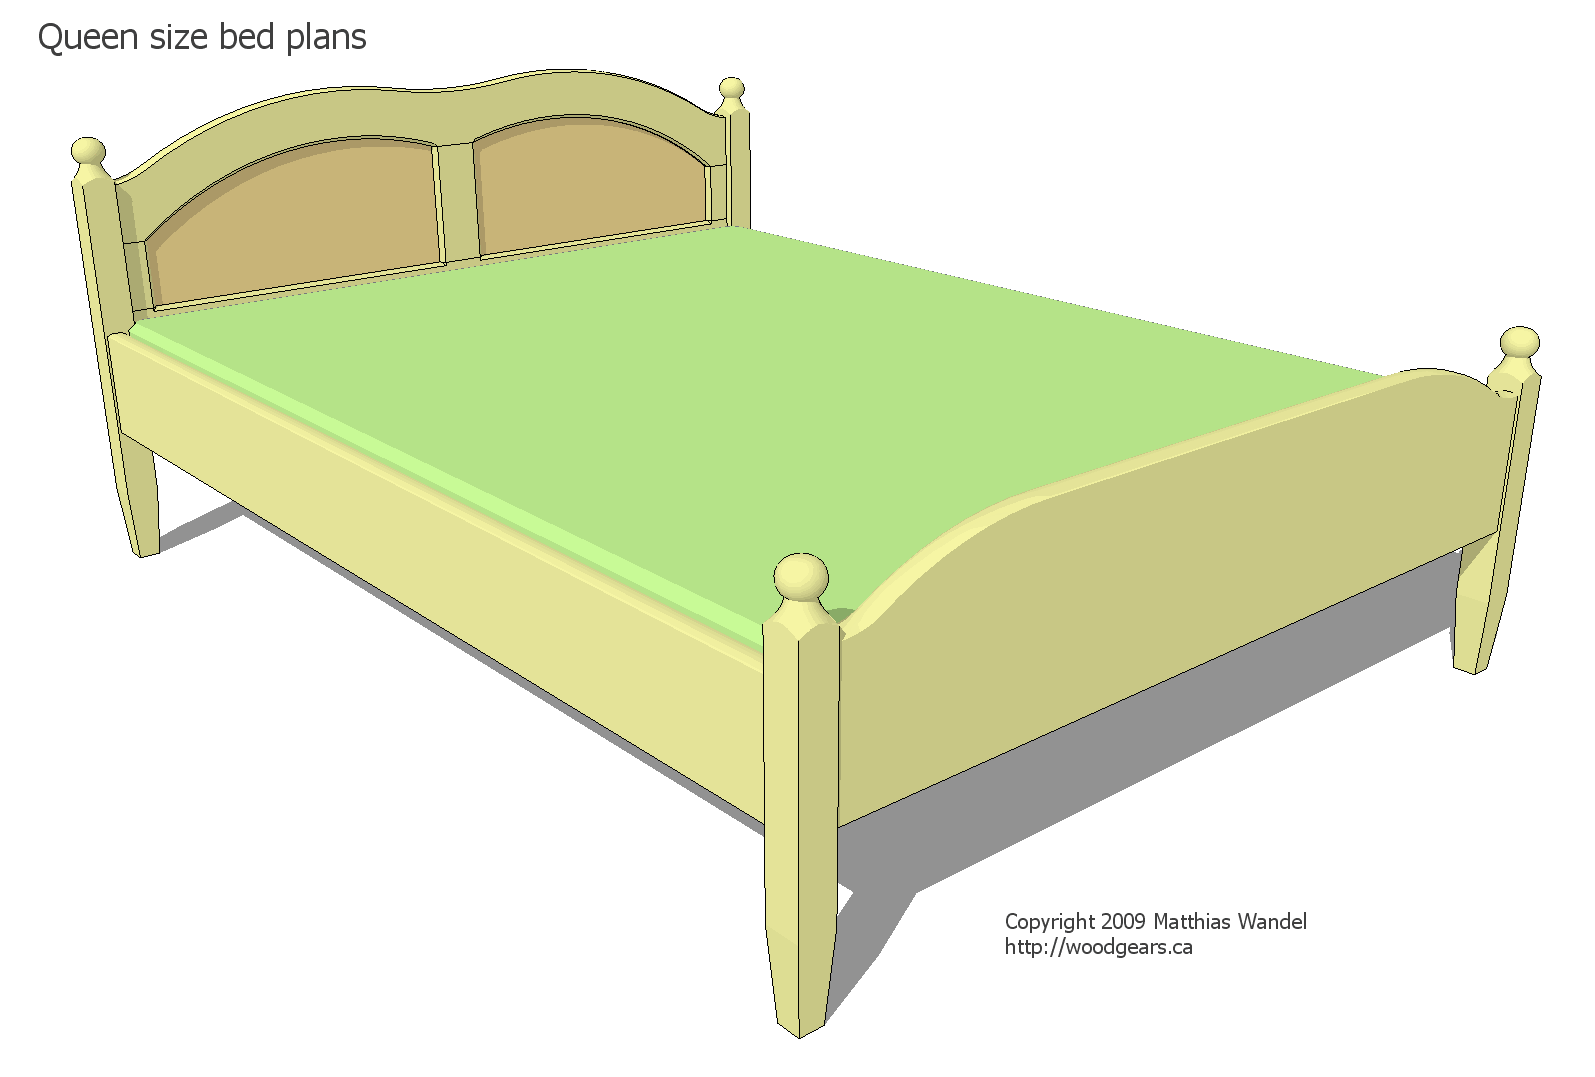 Queen size bed plans Mattress queen size